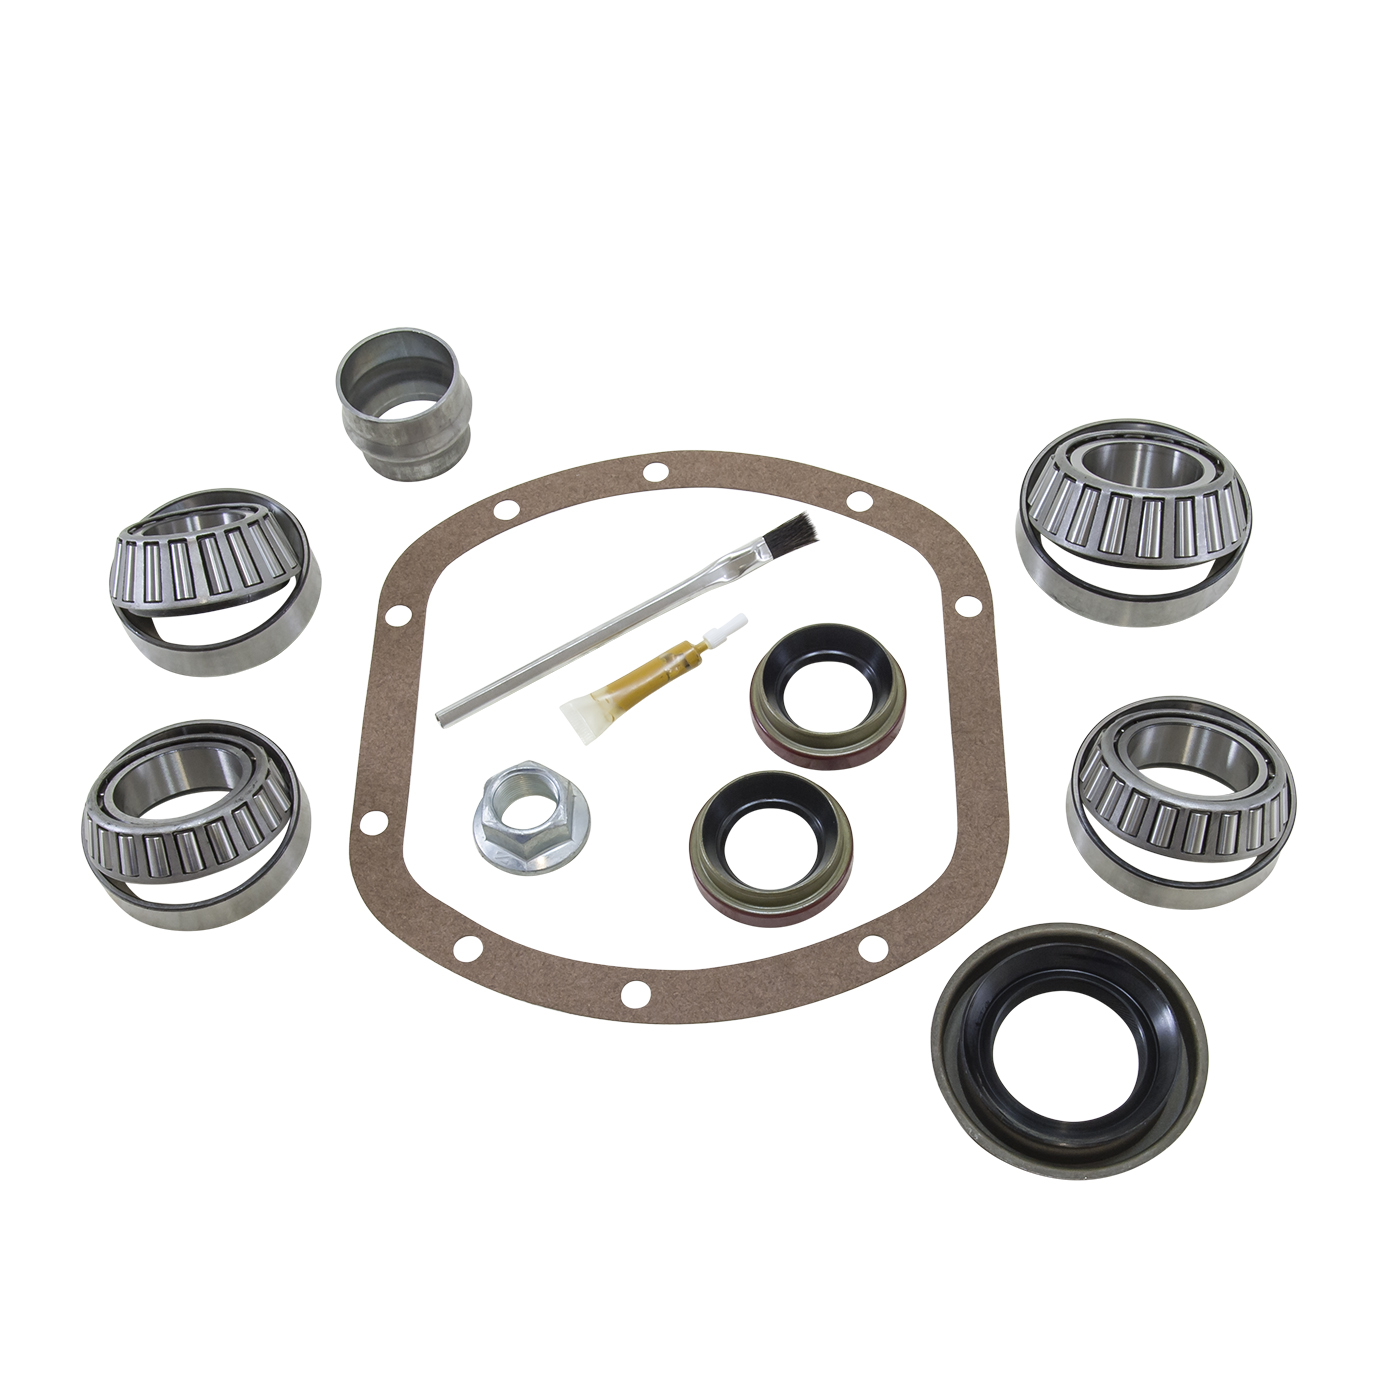 ZBKD30-TJ - USA Standard Bearing kit for Dana 30 TJ front